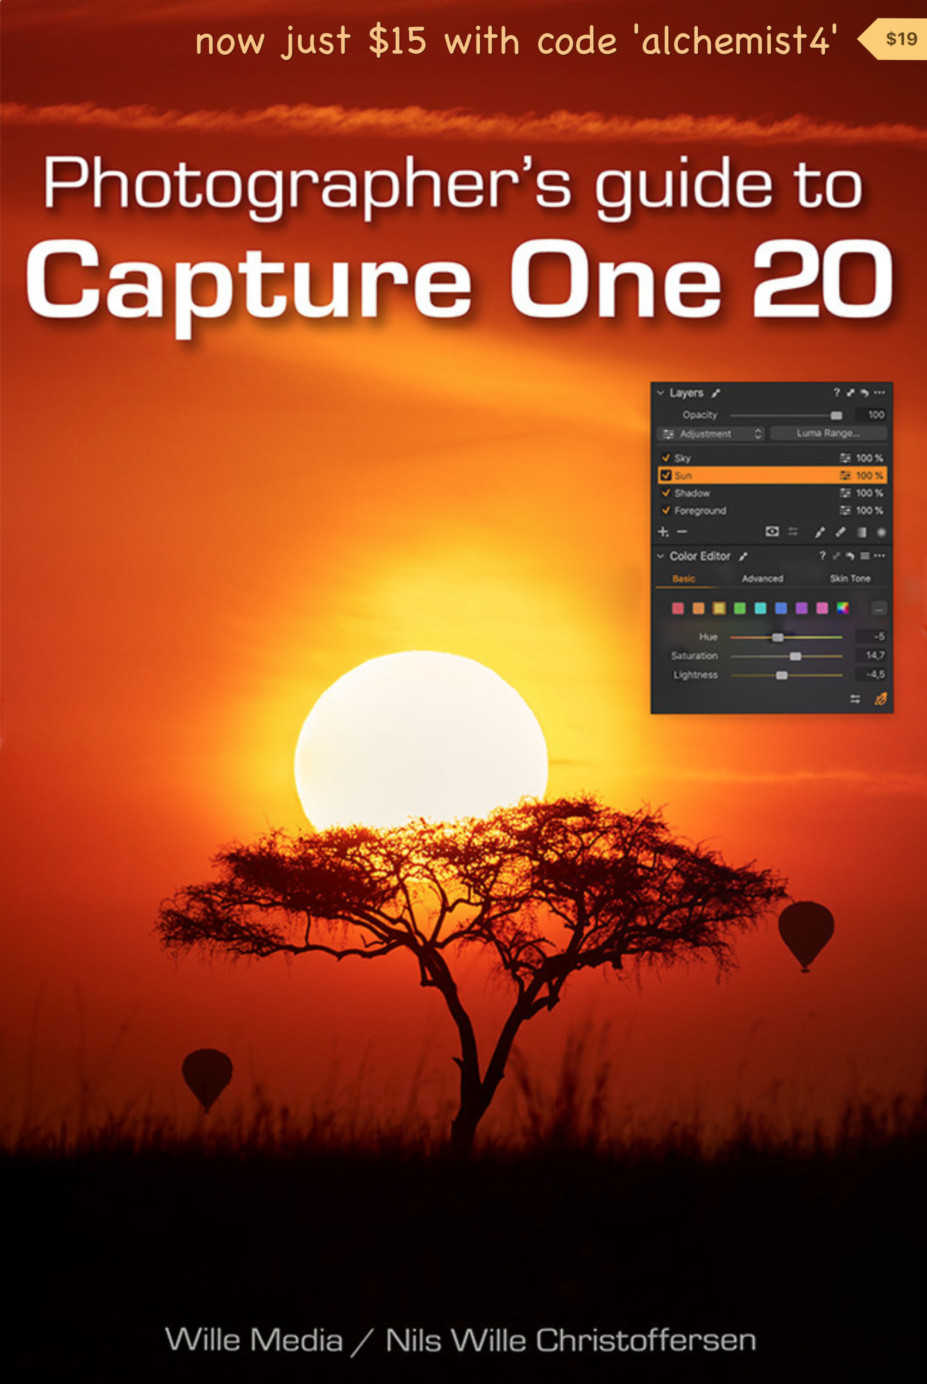 photographer's guide to capture one 20, with discount code